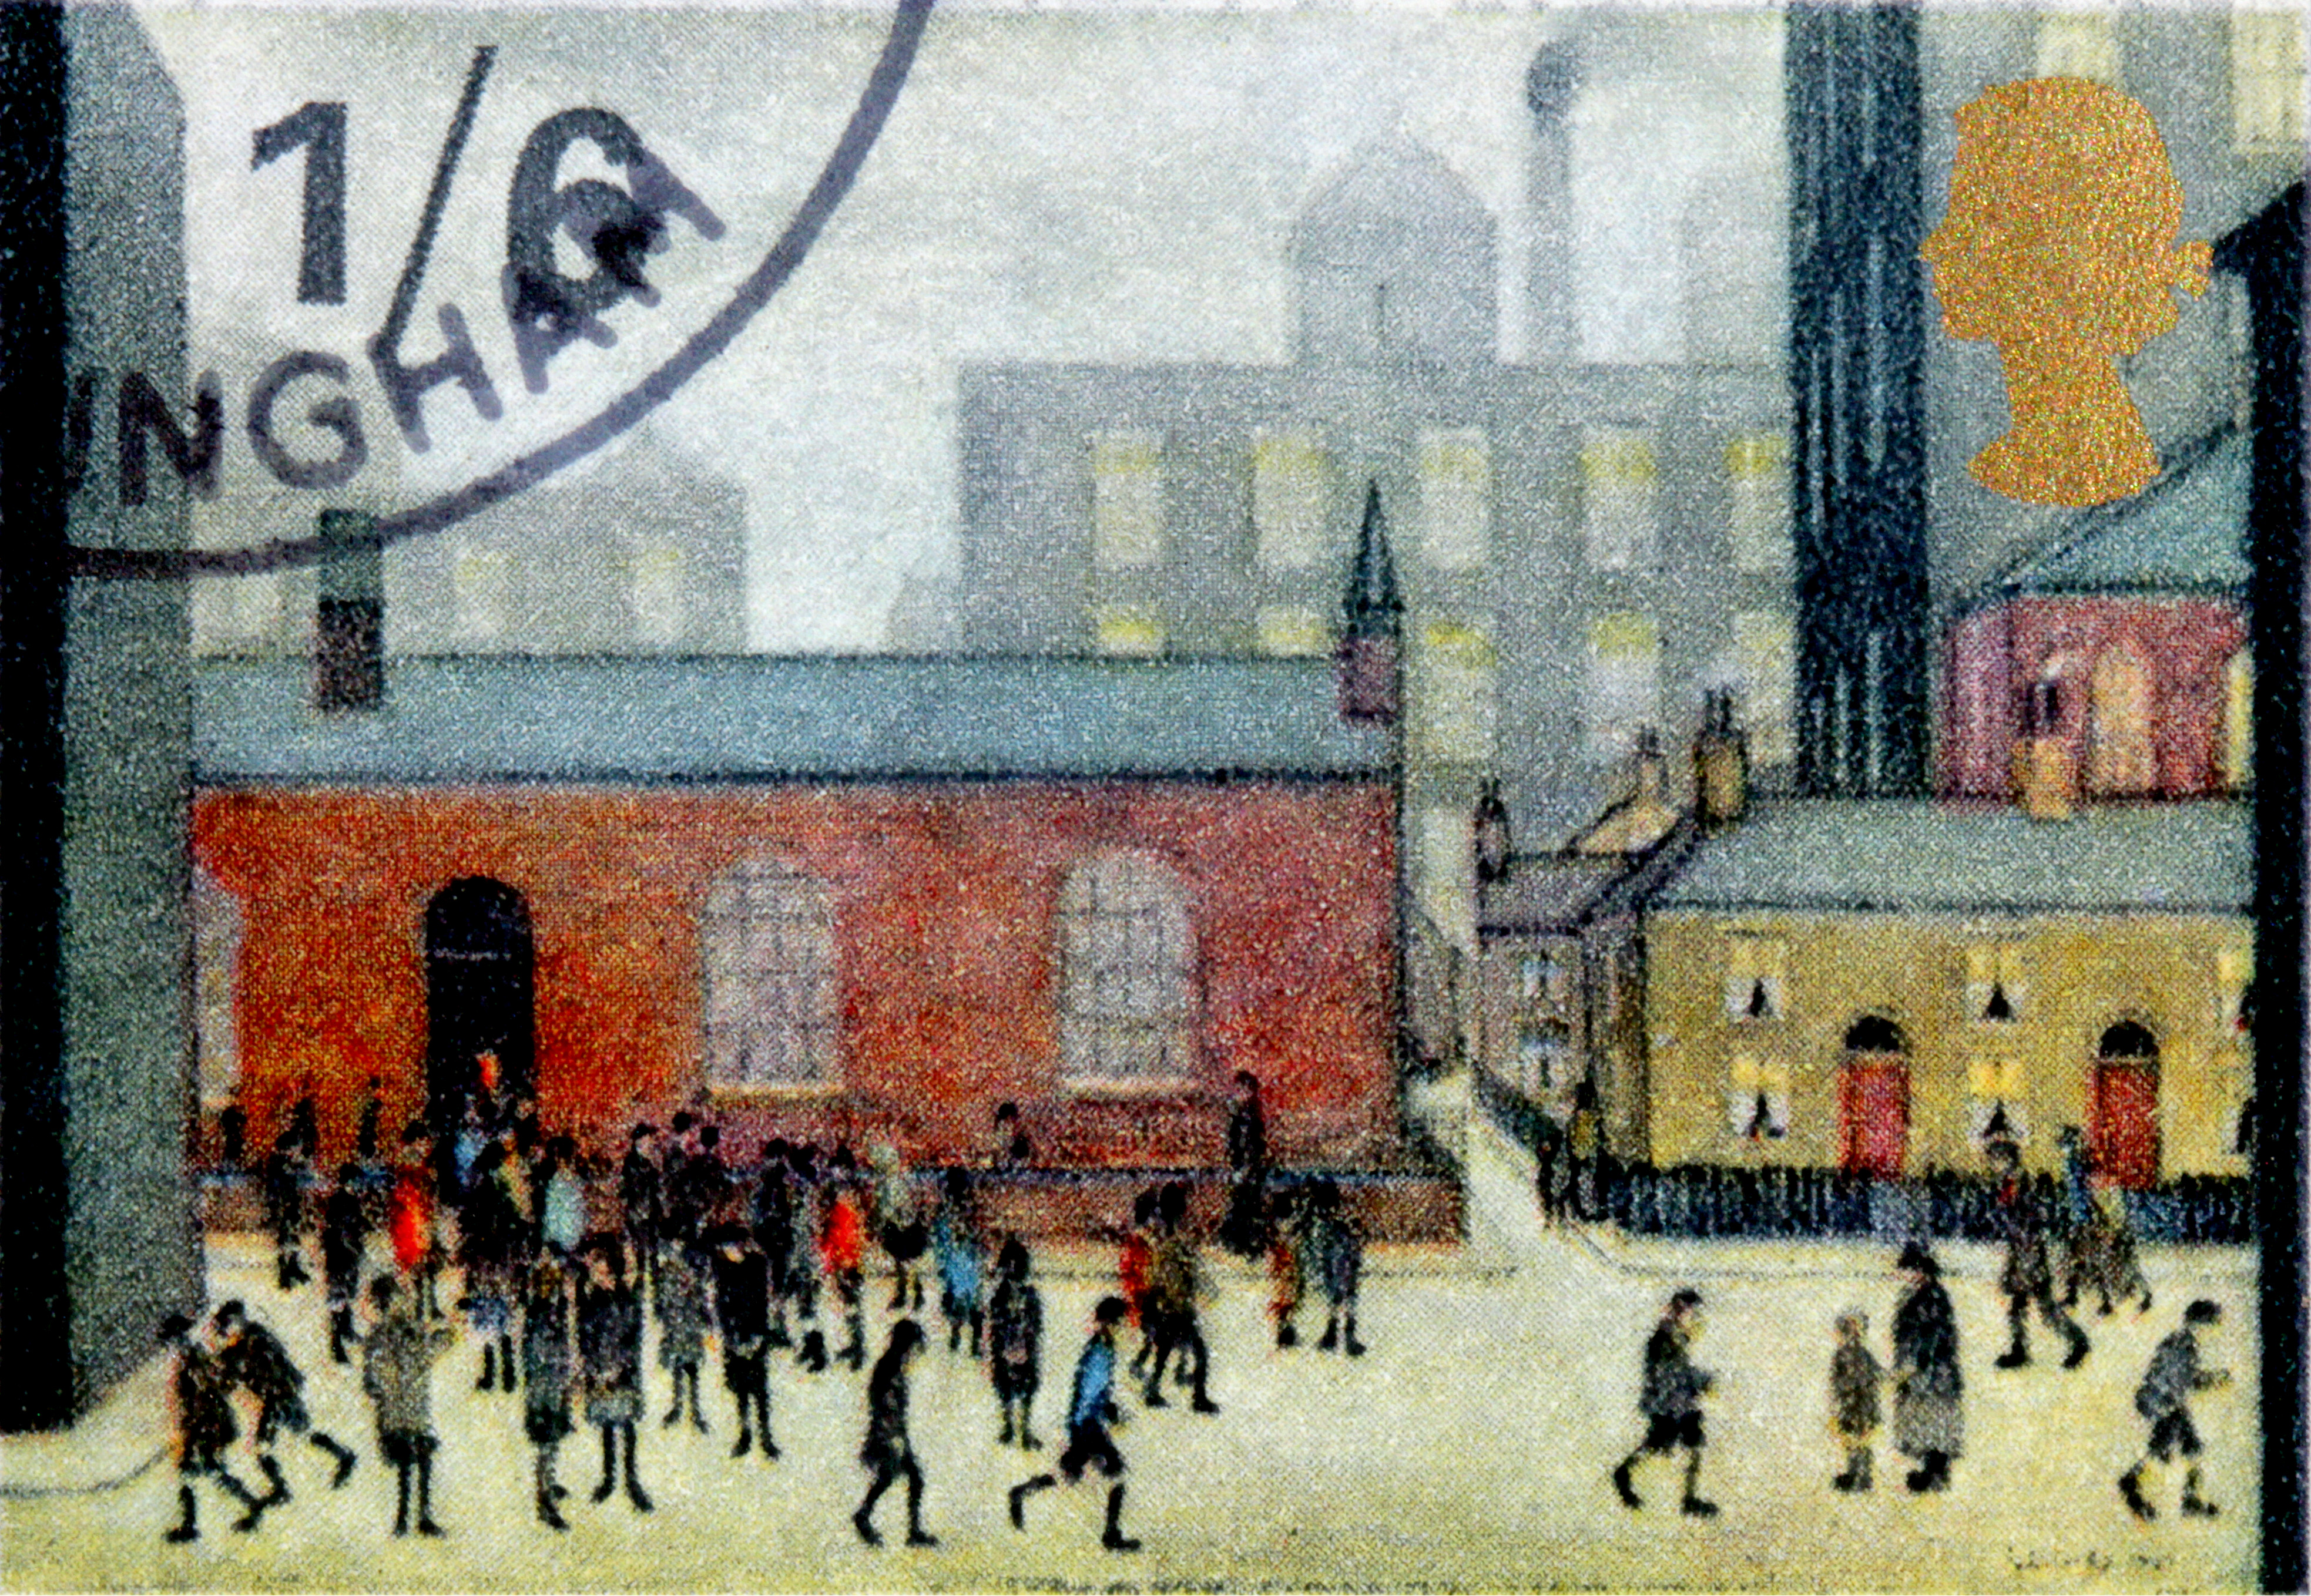 History L S Lowry Level 1 Activity For Kids